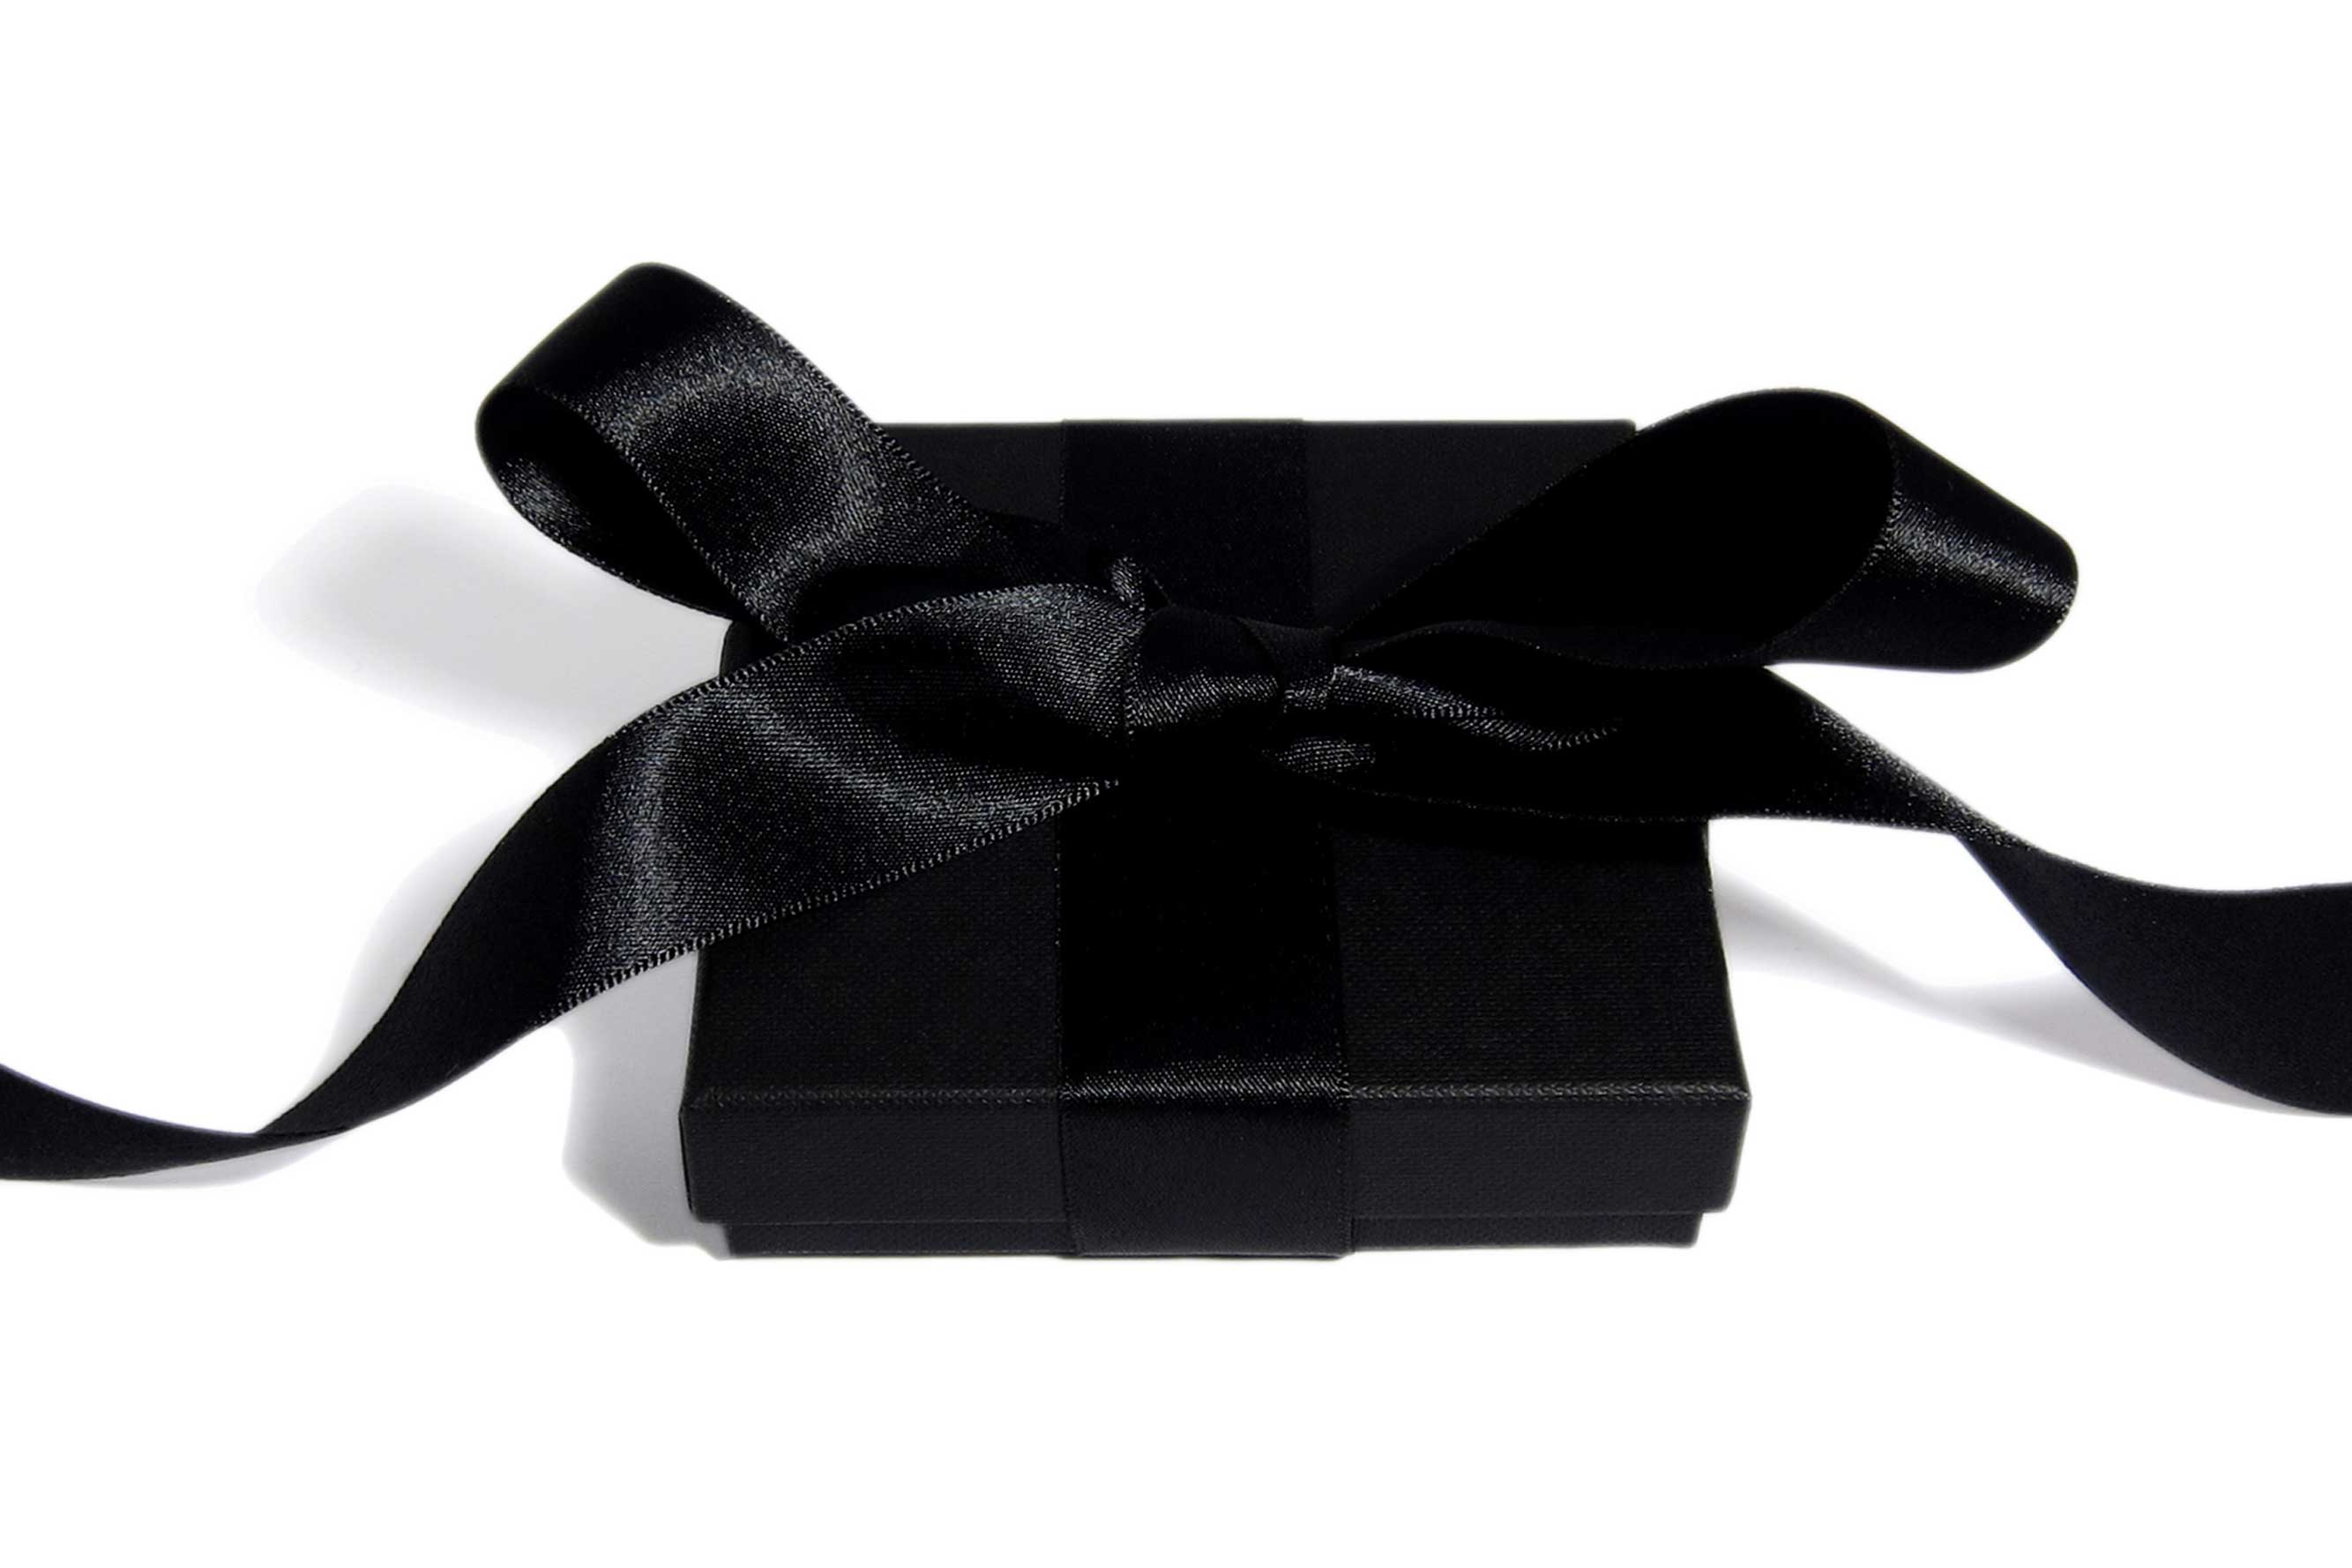 Beautiful wrapped black jewelry box in a black satin ribbon.